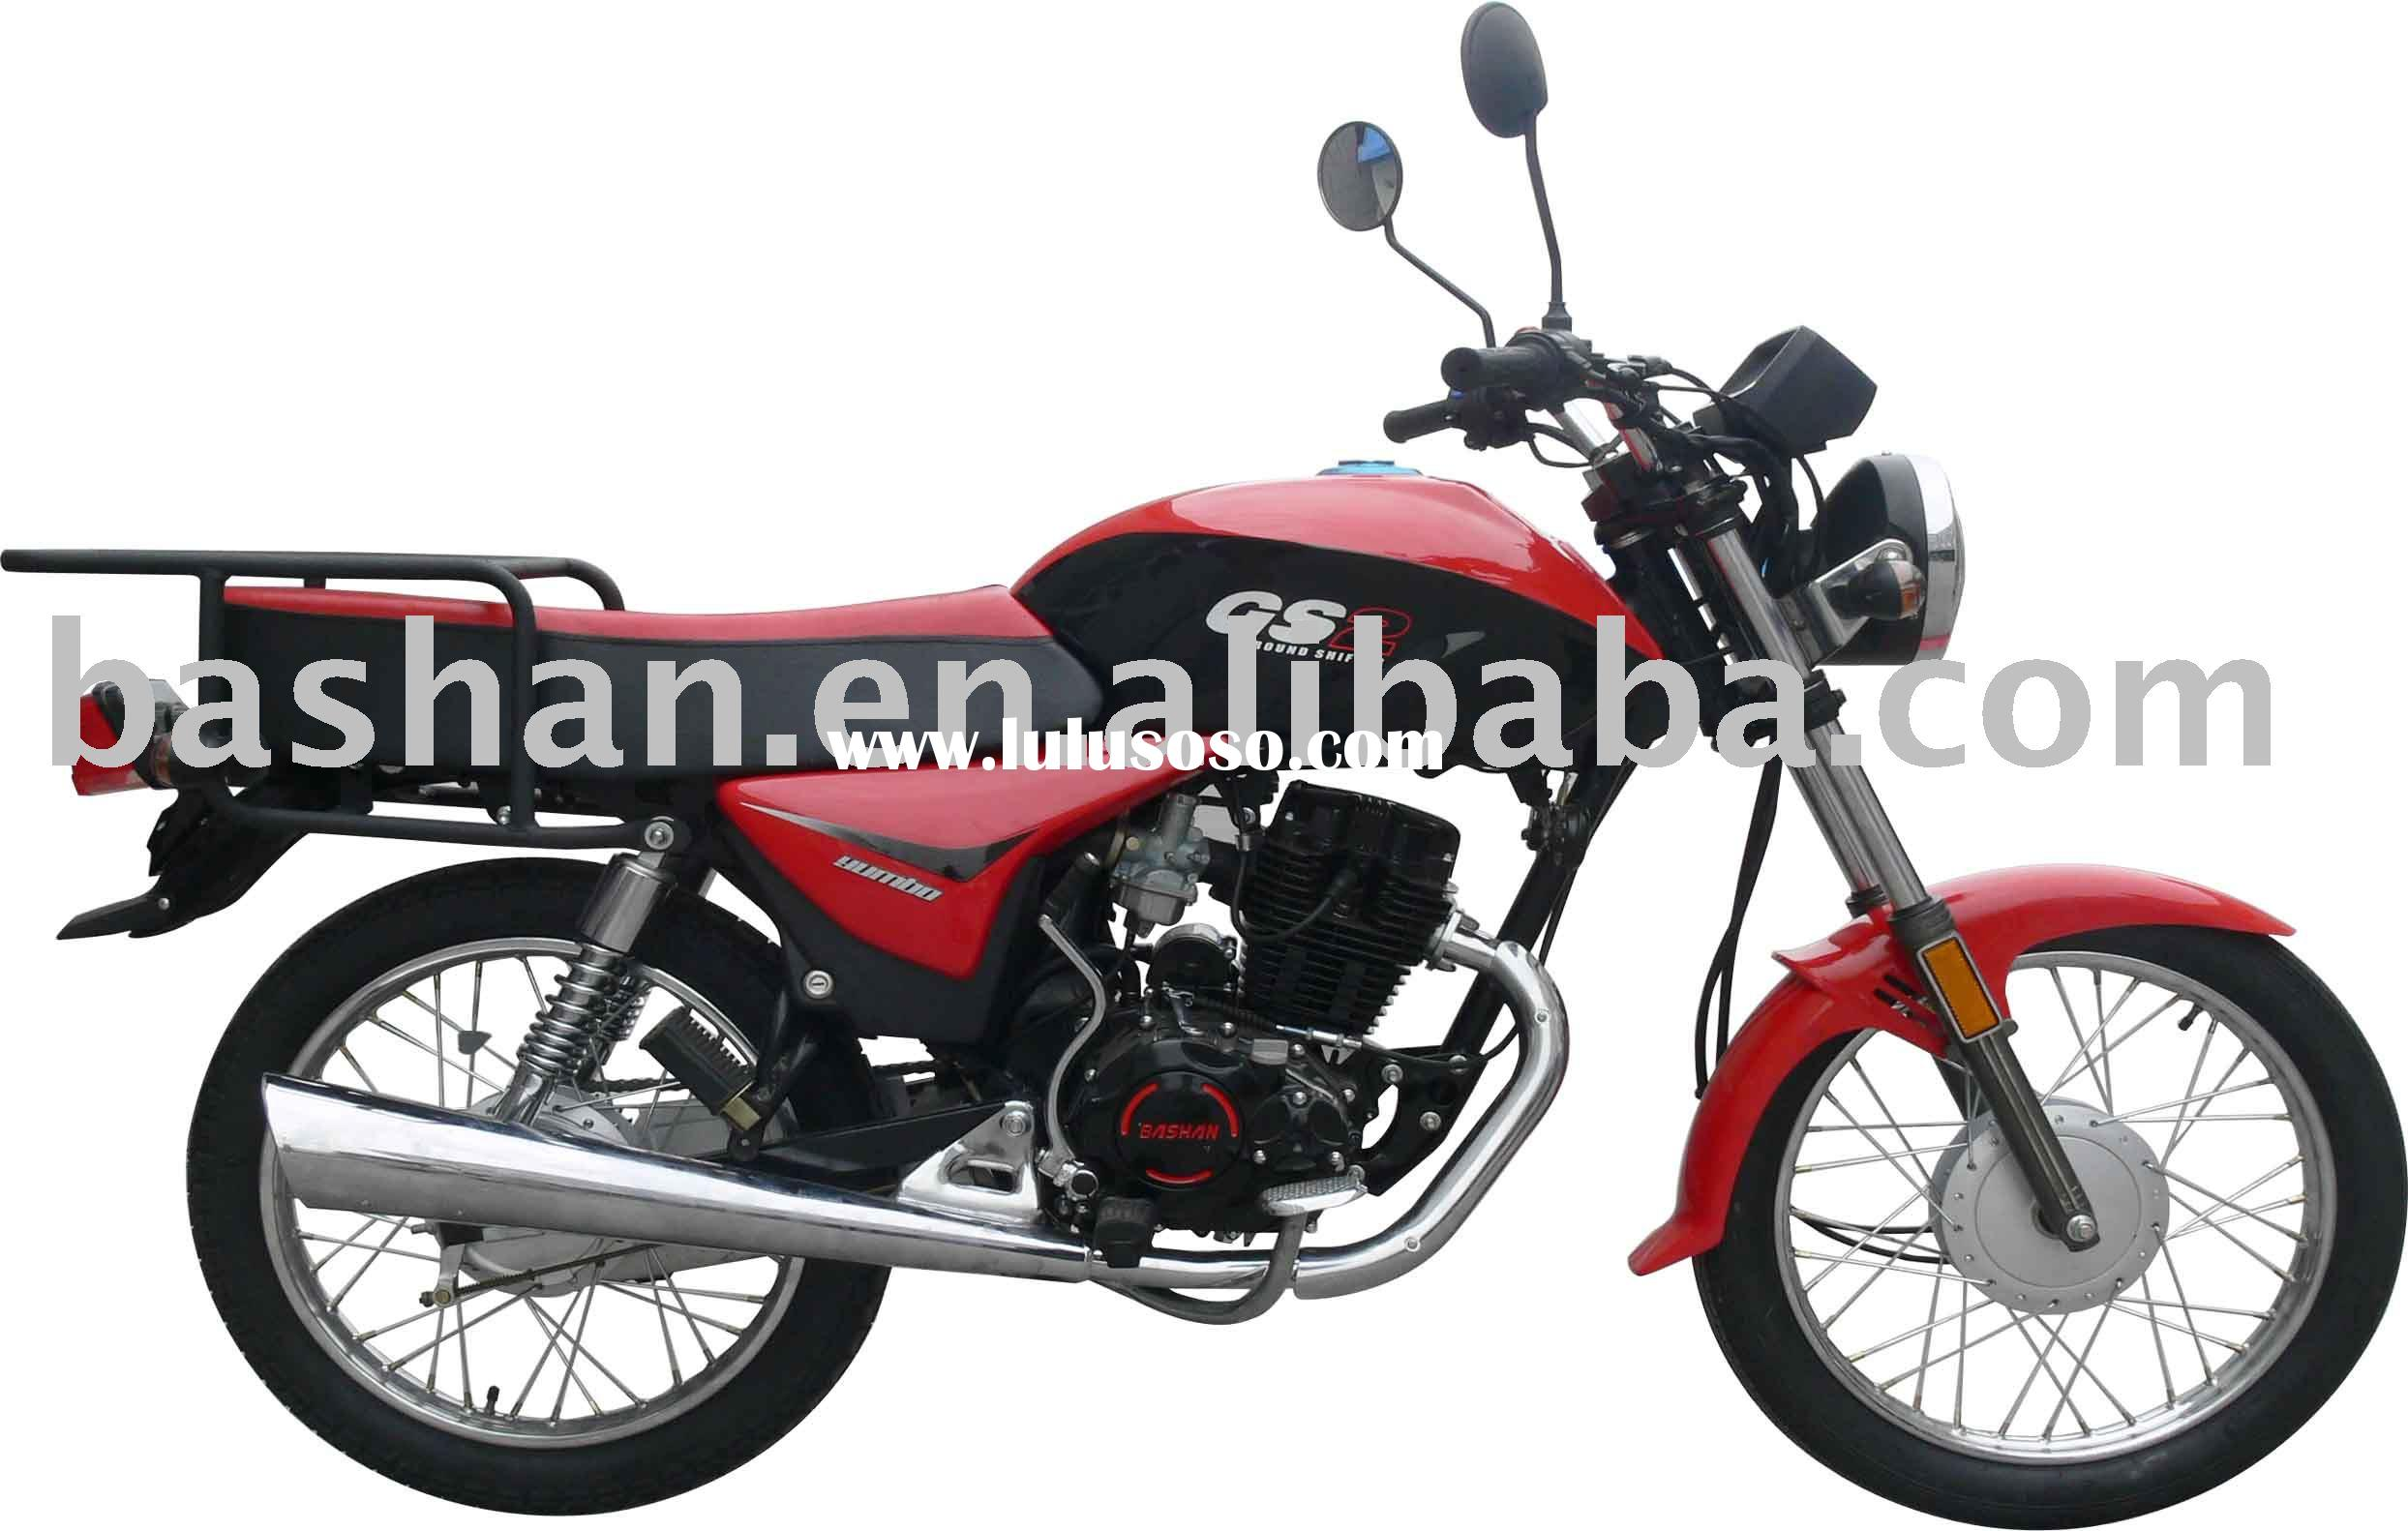 BS150-18 motorcycles